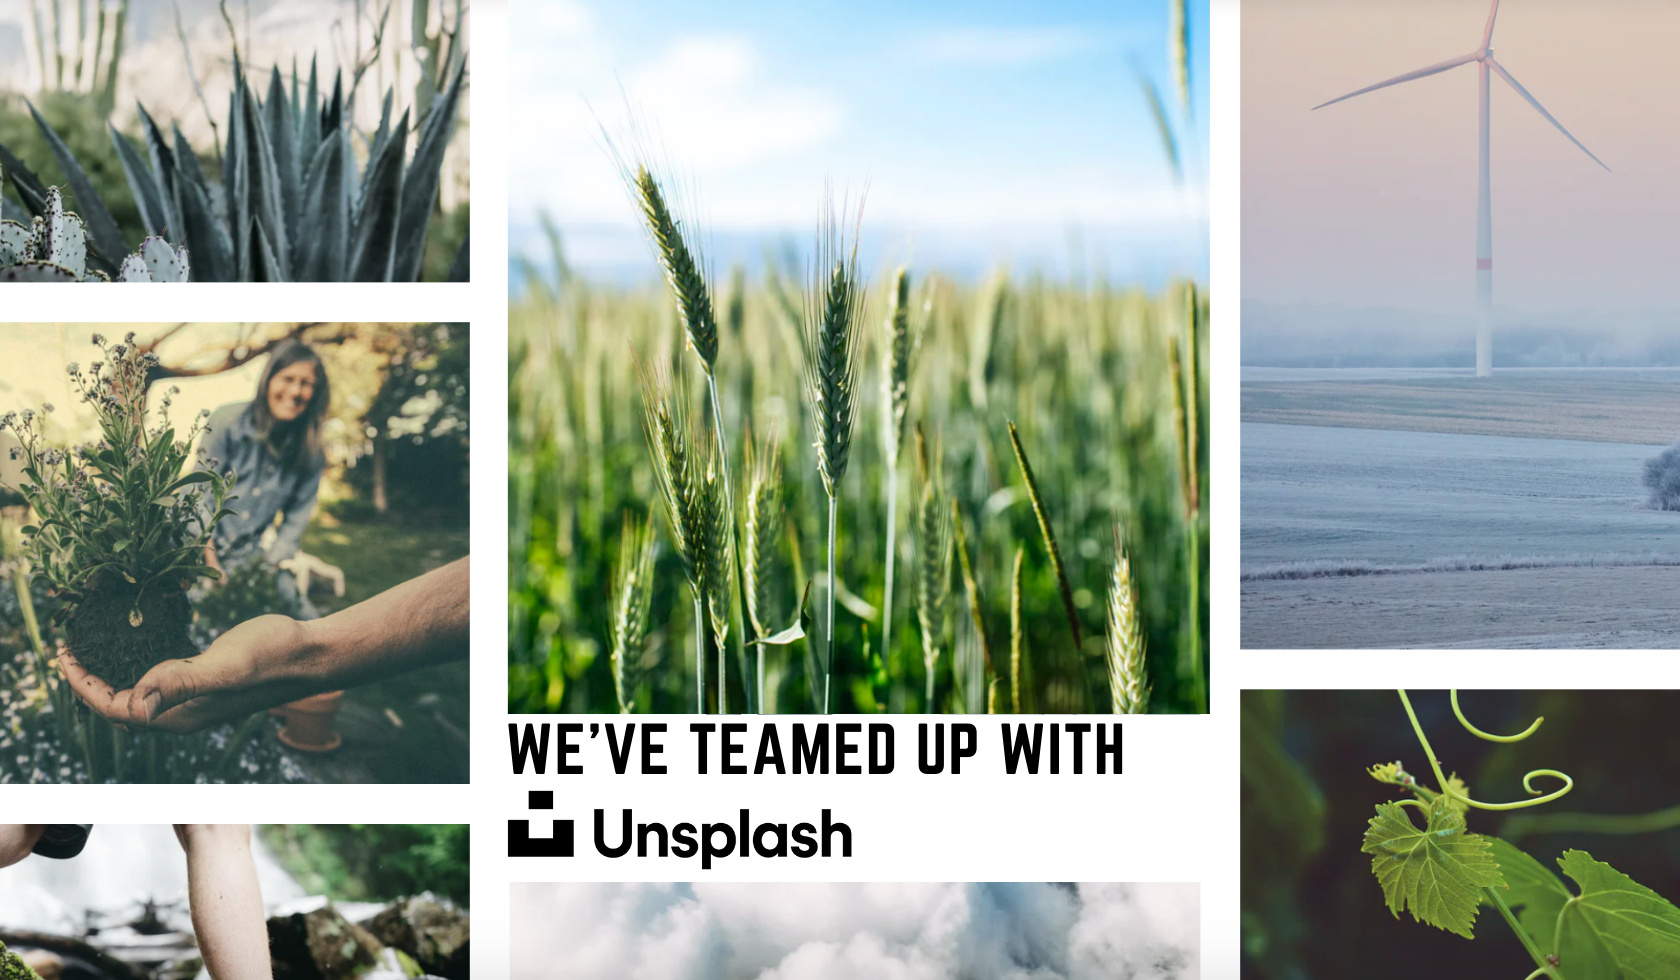 Boxed Water + Unsplash Team Up to Plant More Trees